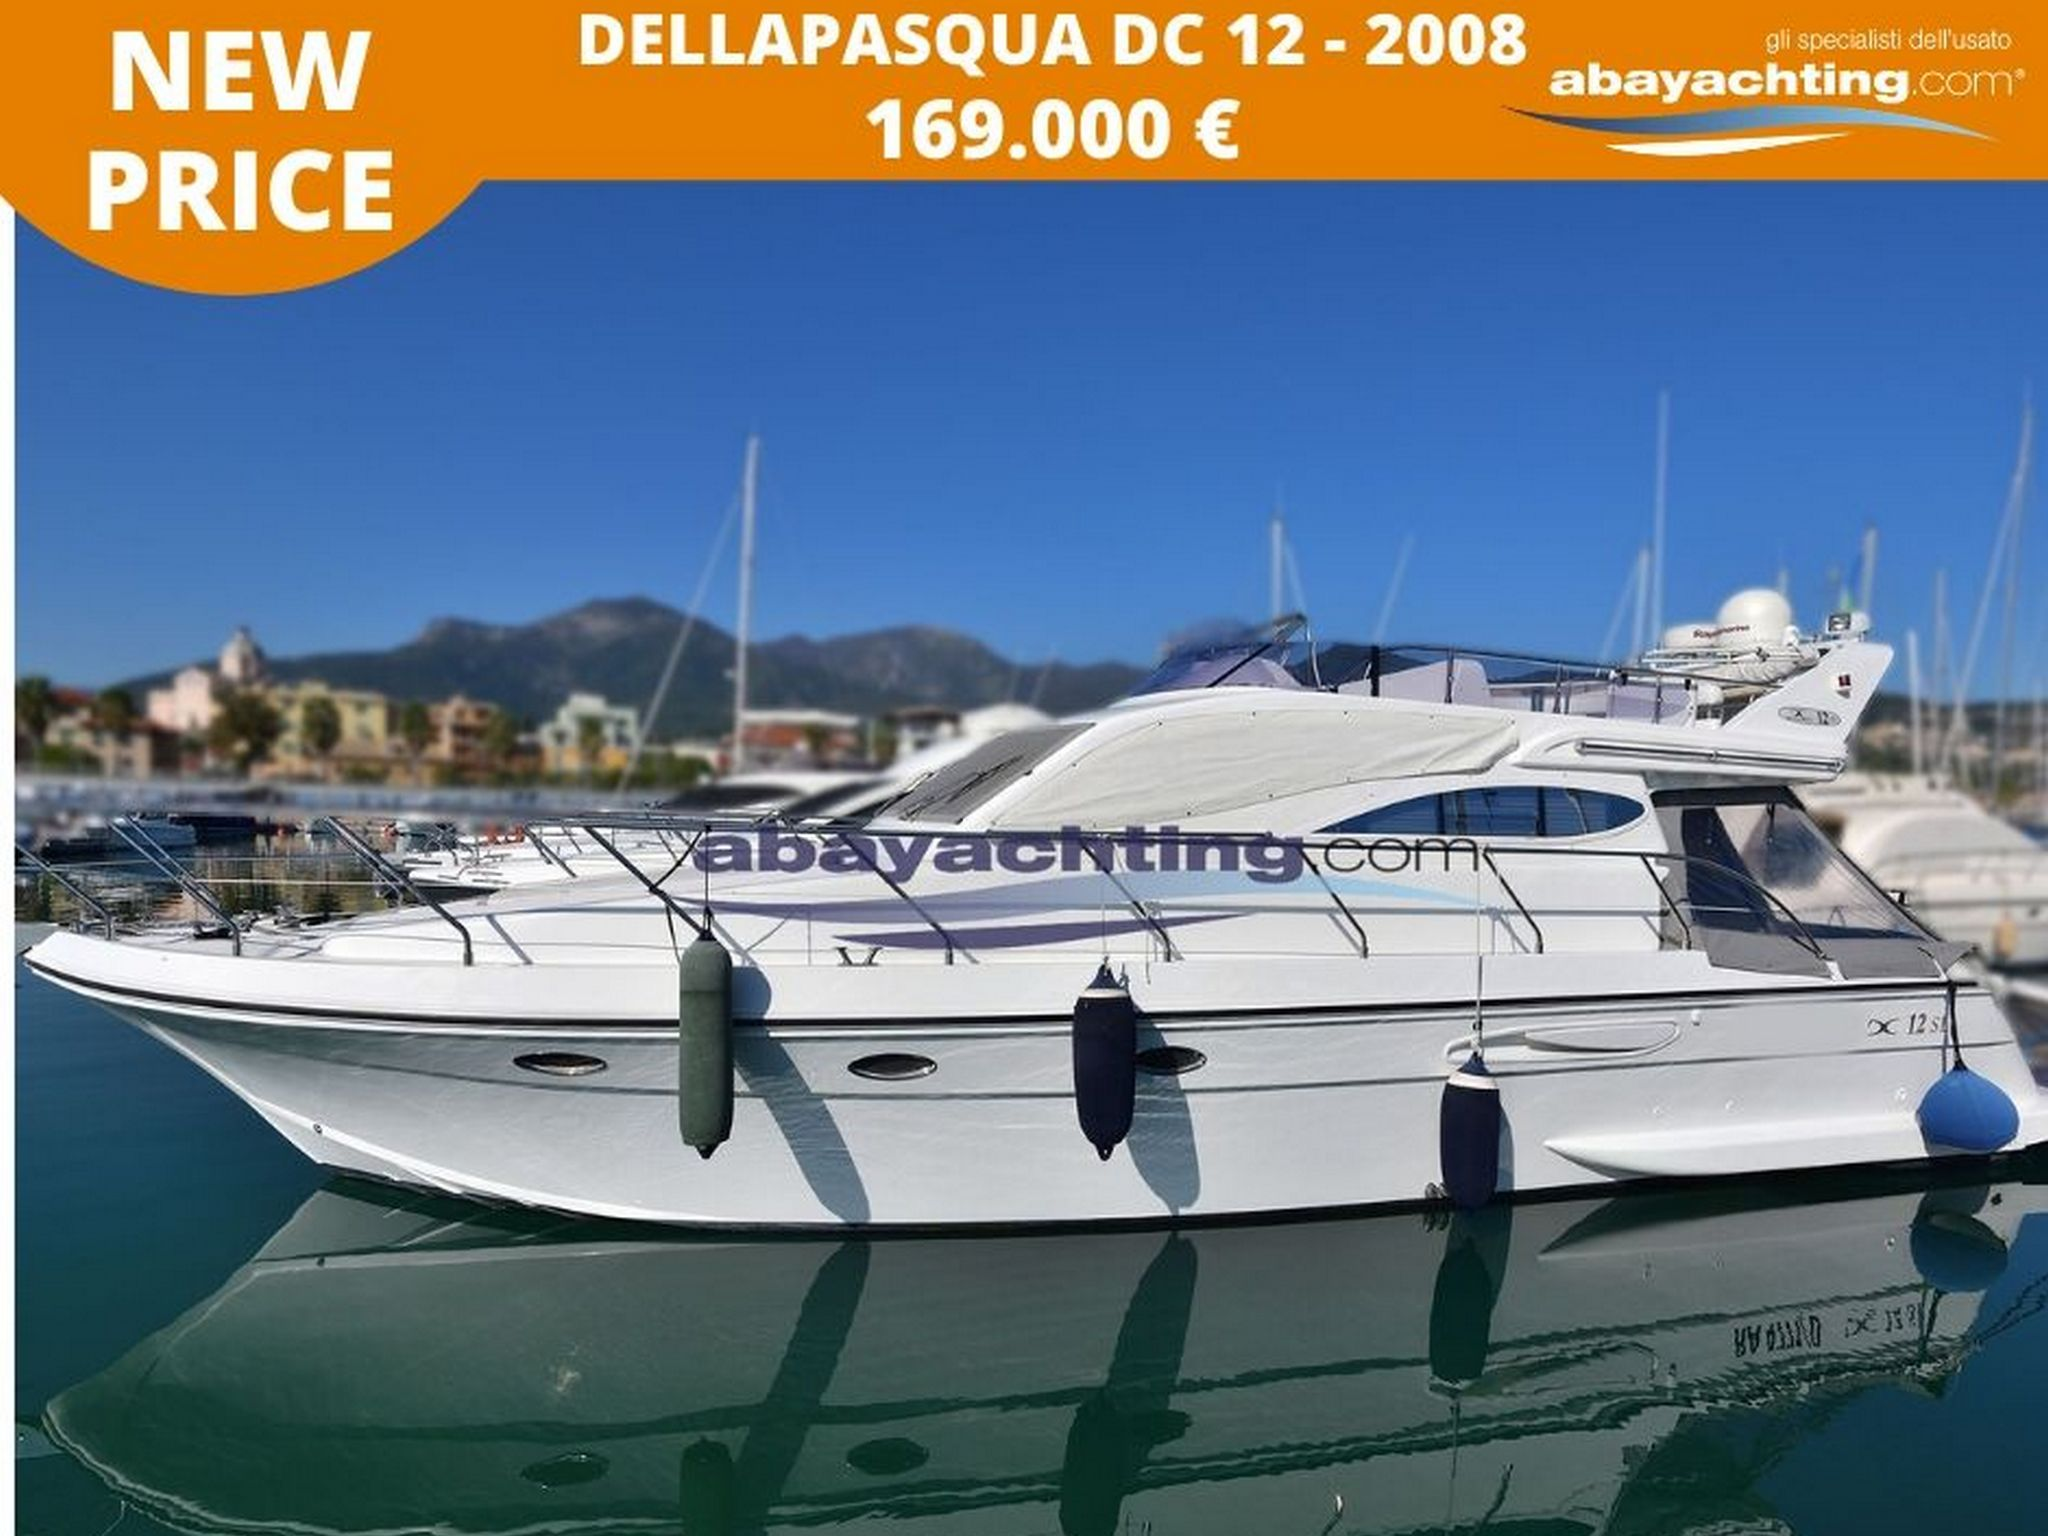 Price reduction Dellapasqua DC 12 Fly